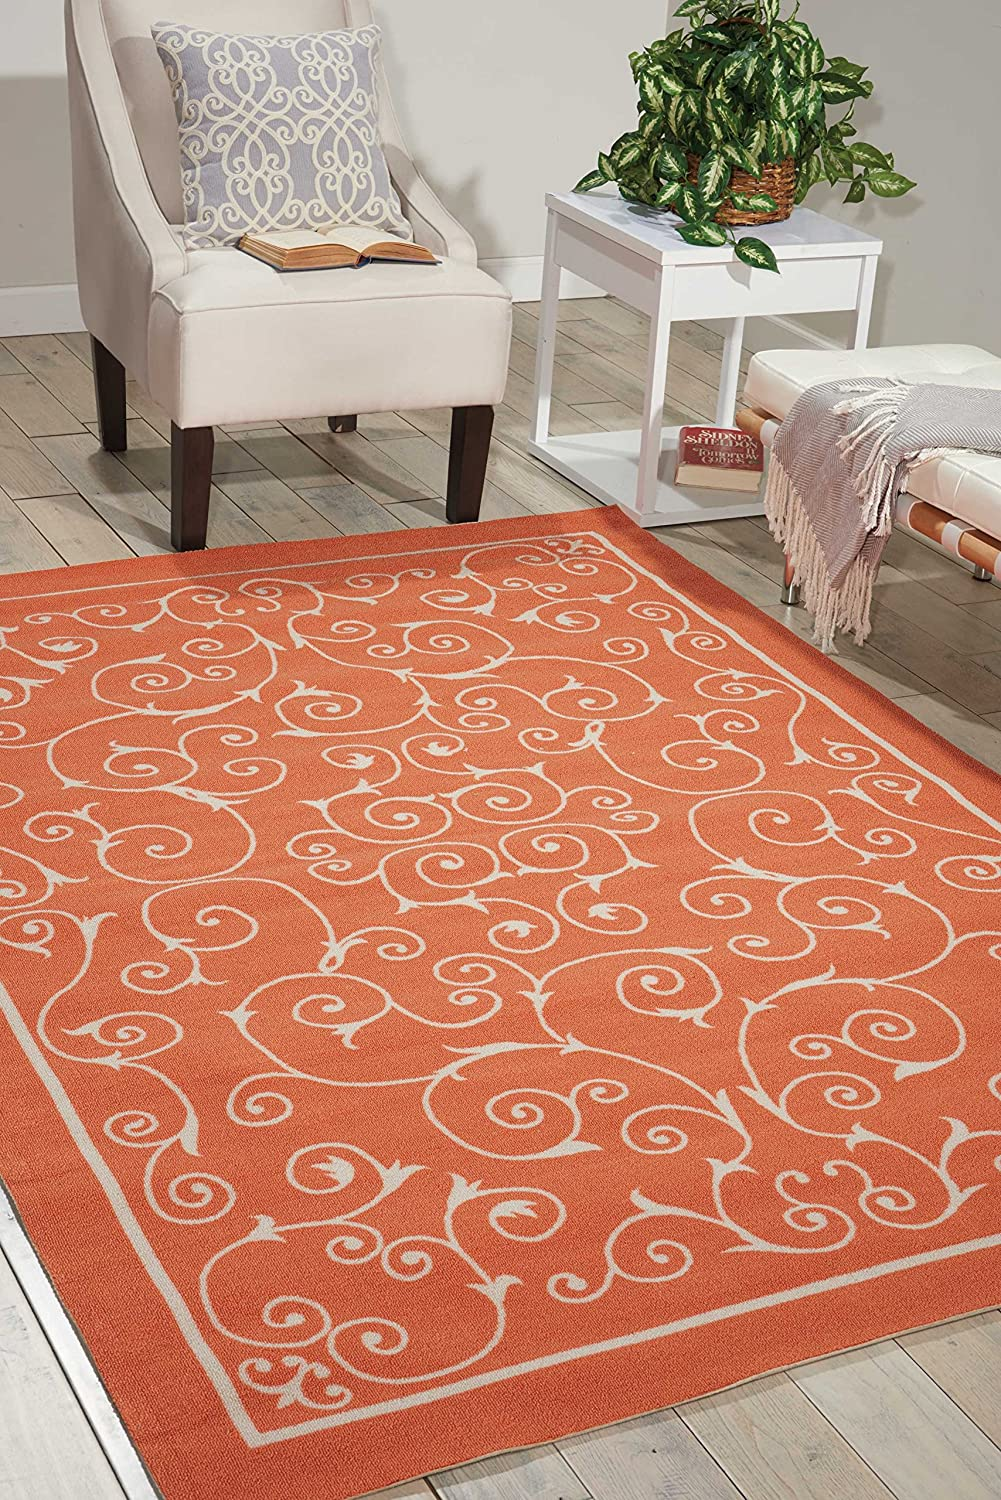 Nourison Home and Garden Indoor/Outdoor Floral Vibrant Orange Rug (5'x7'5